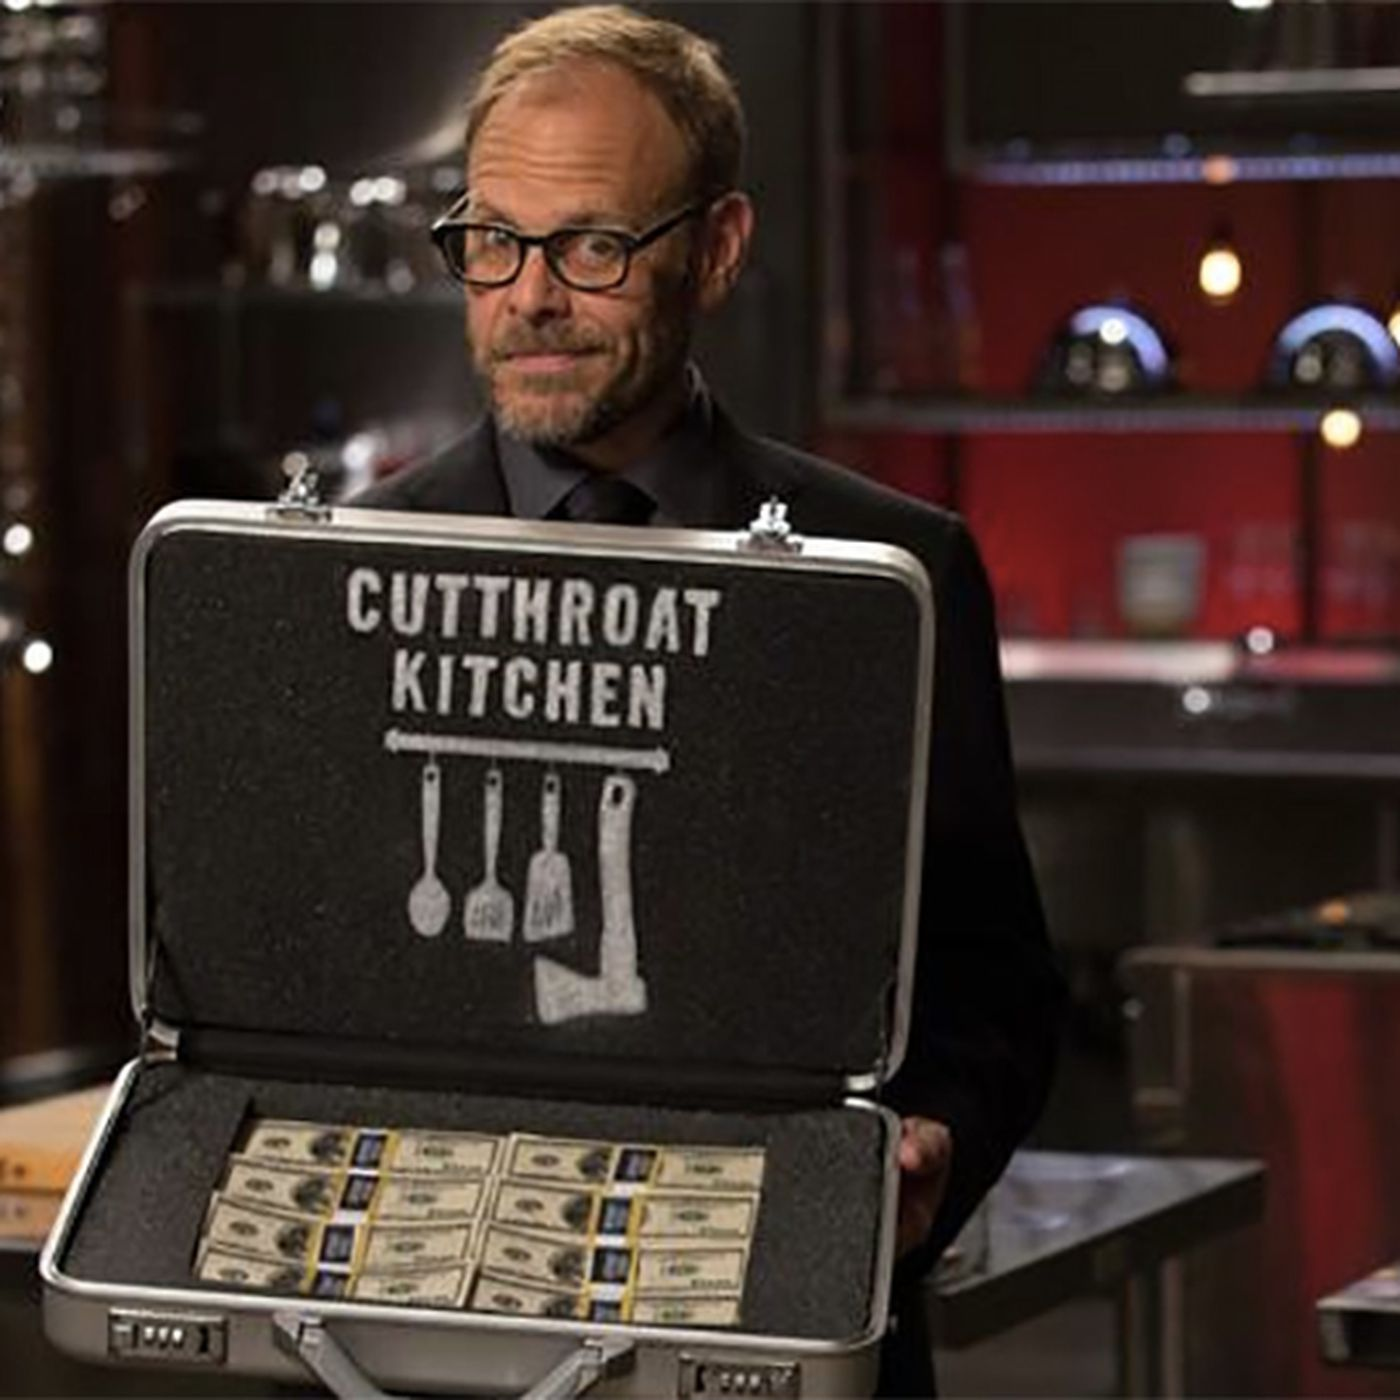 chef justin vaiciunas competes on cutthroat kitchen this sunday eater detroit - Cutthroat Kitchen